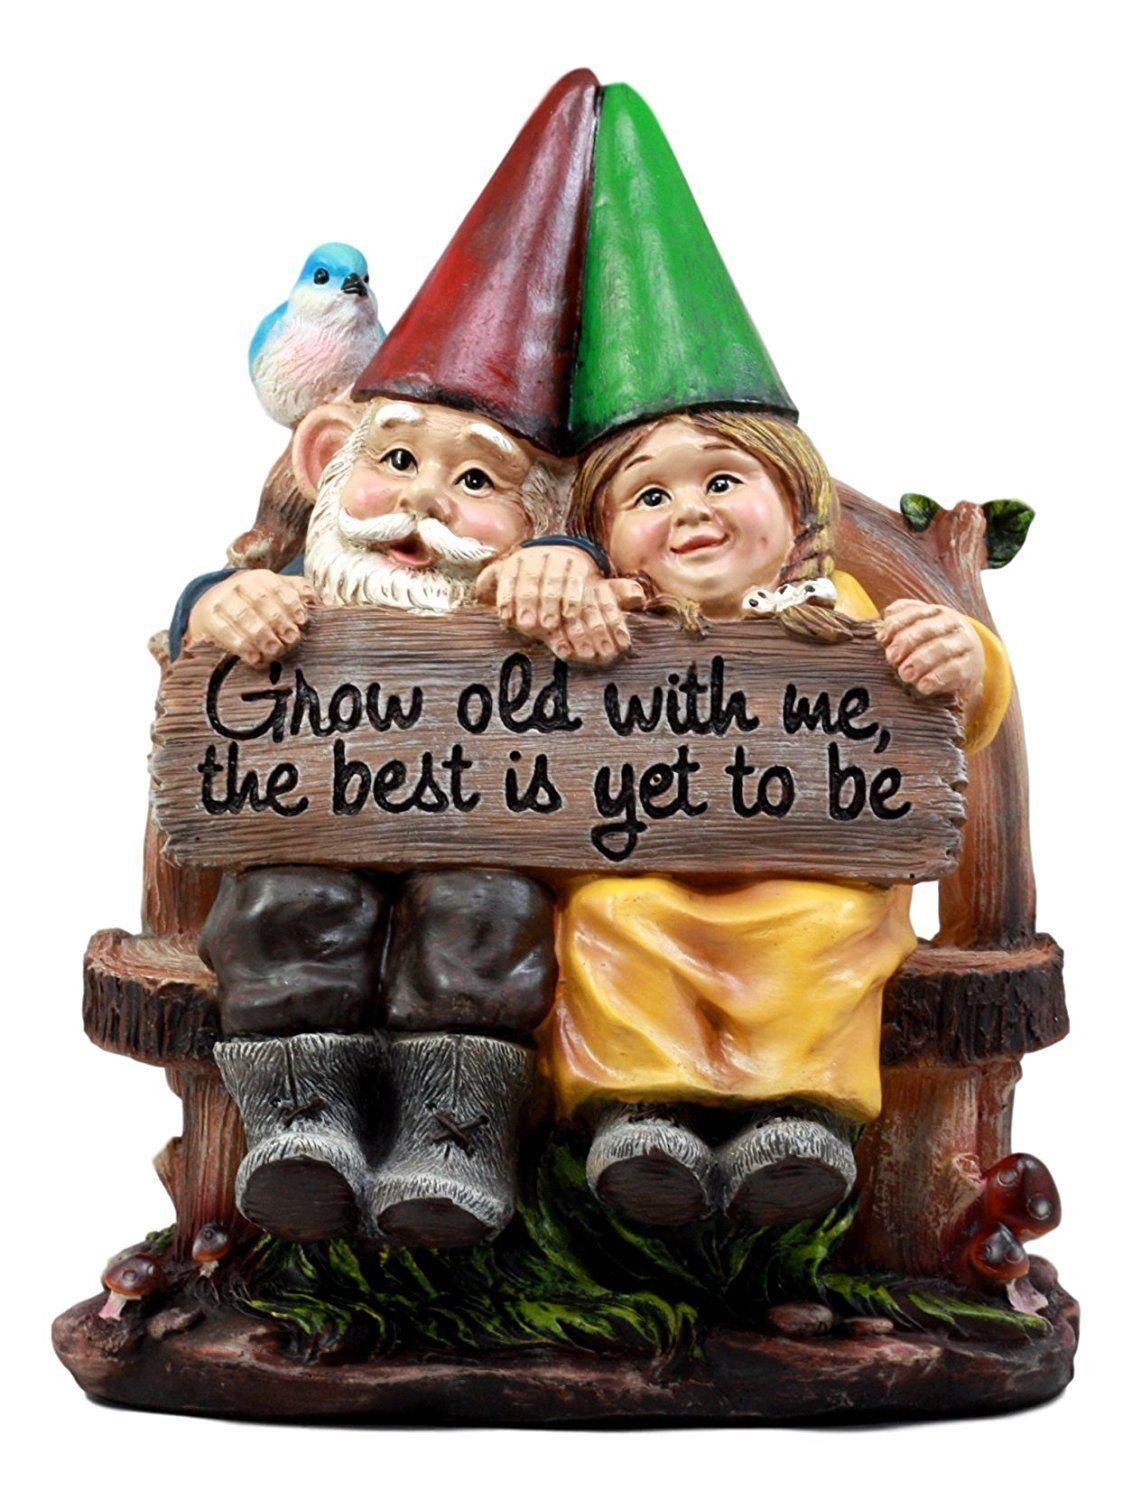 Ebros Grow Old With Me Mr And Mrs Gnome Statue 11''Tall For Patio Garden Lawn Home Decor Figurine